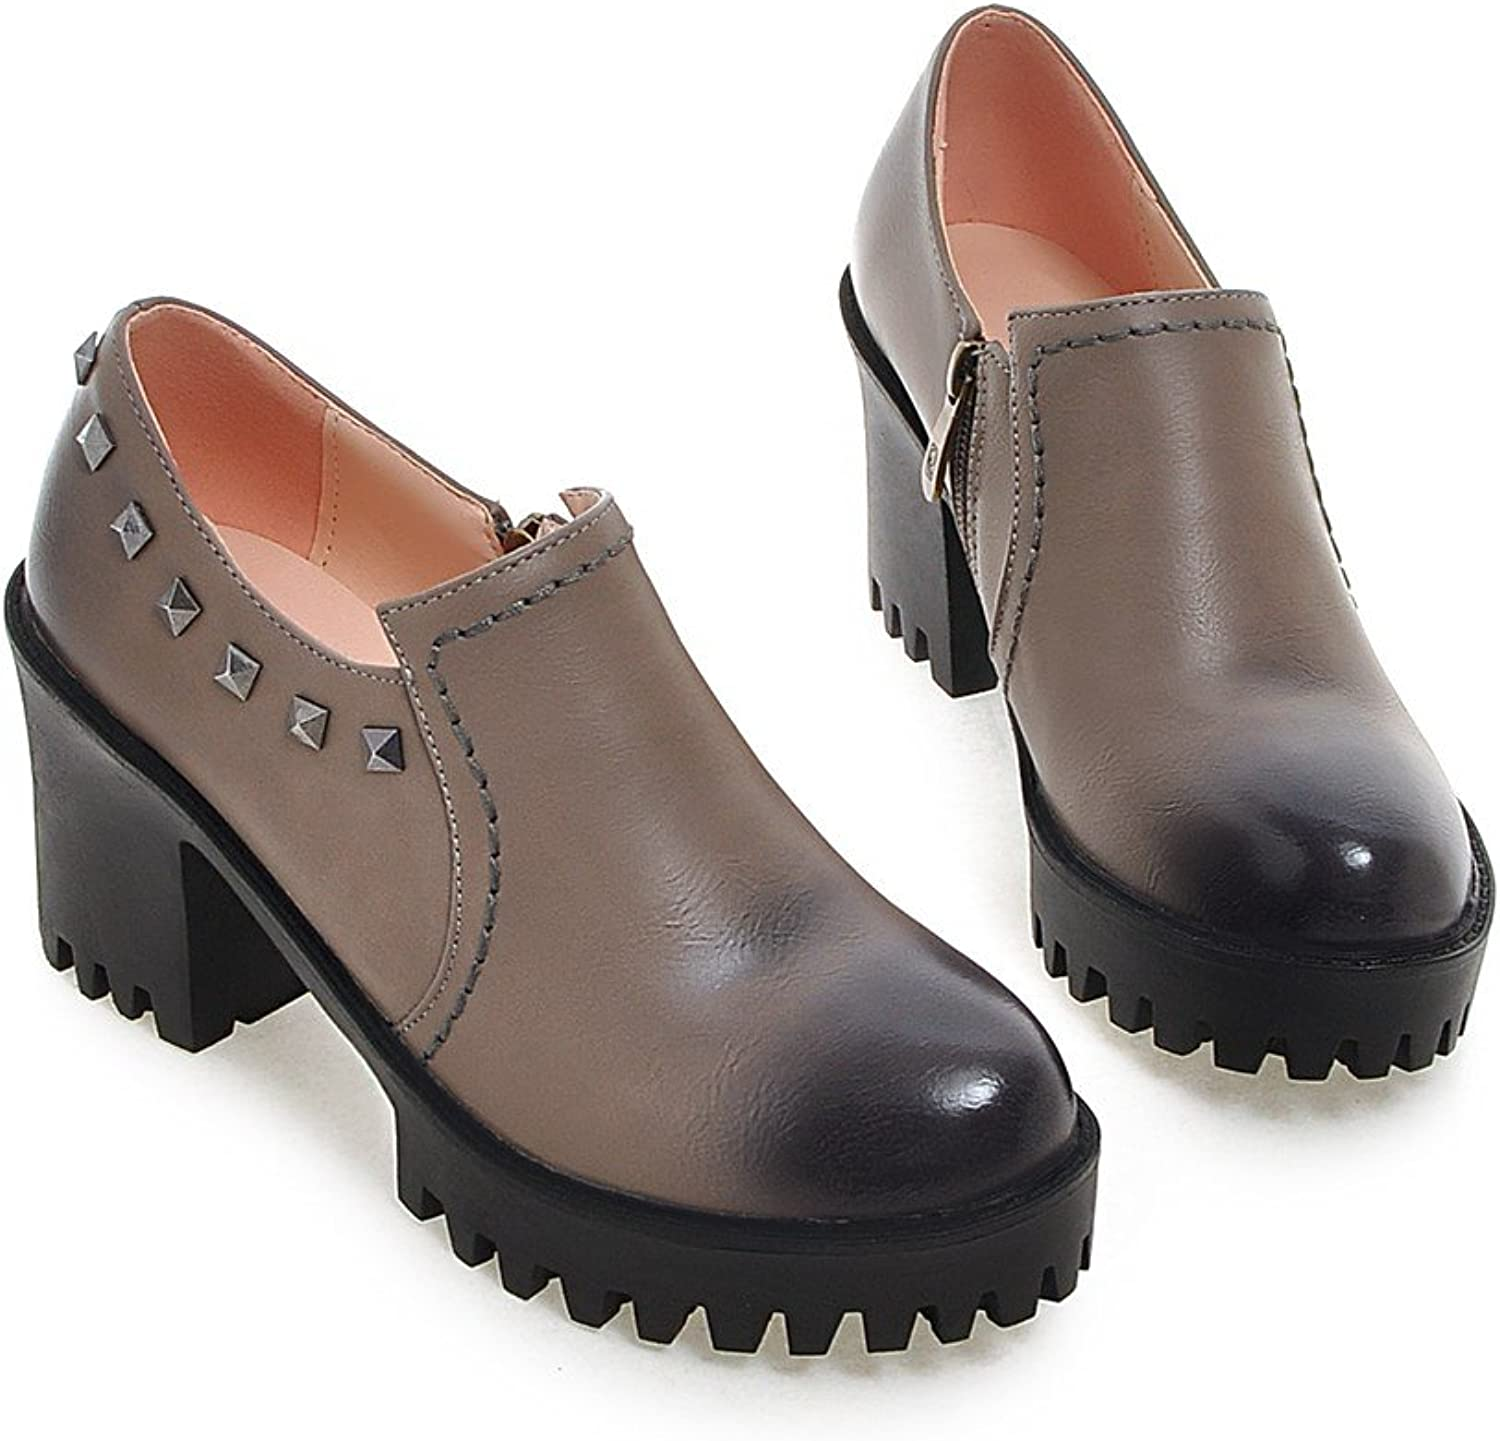 MFairy Woman's Fashion British Style Rivet Martin Boots Casual Oxford Flats